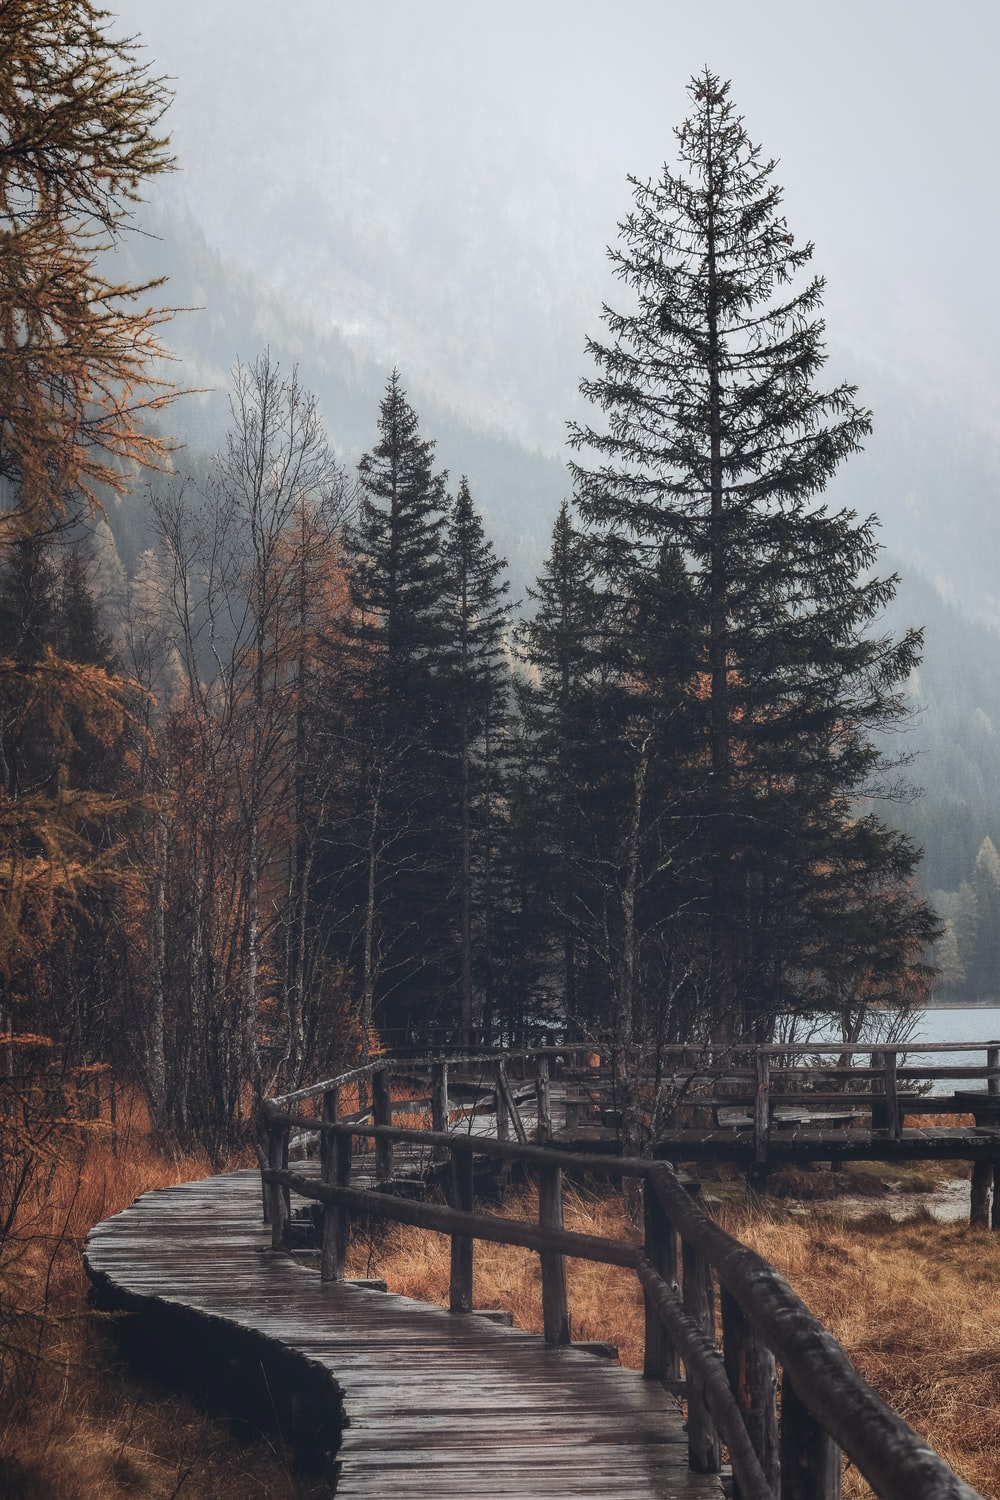 brown wooden pathway with trees under foggy weather